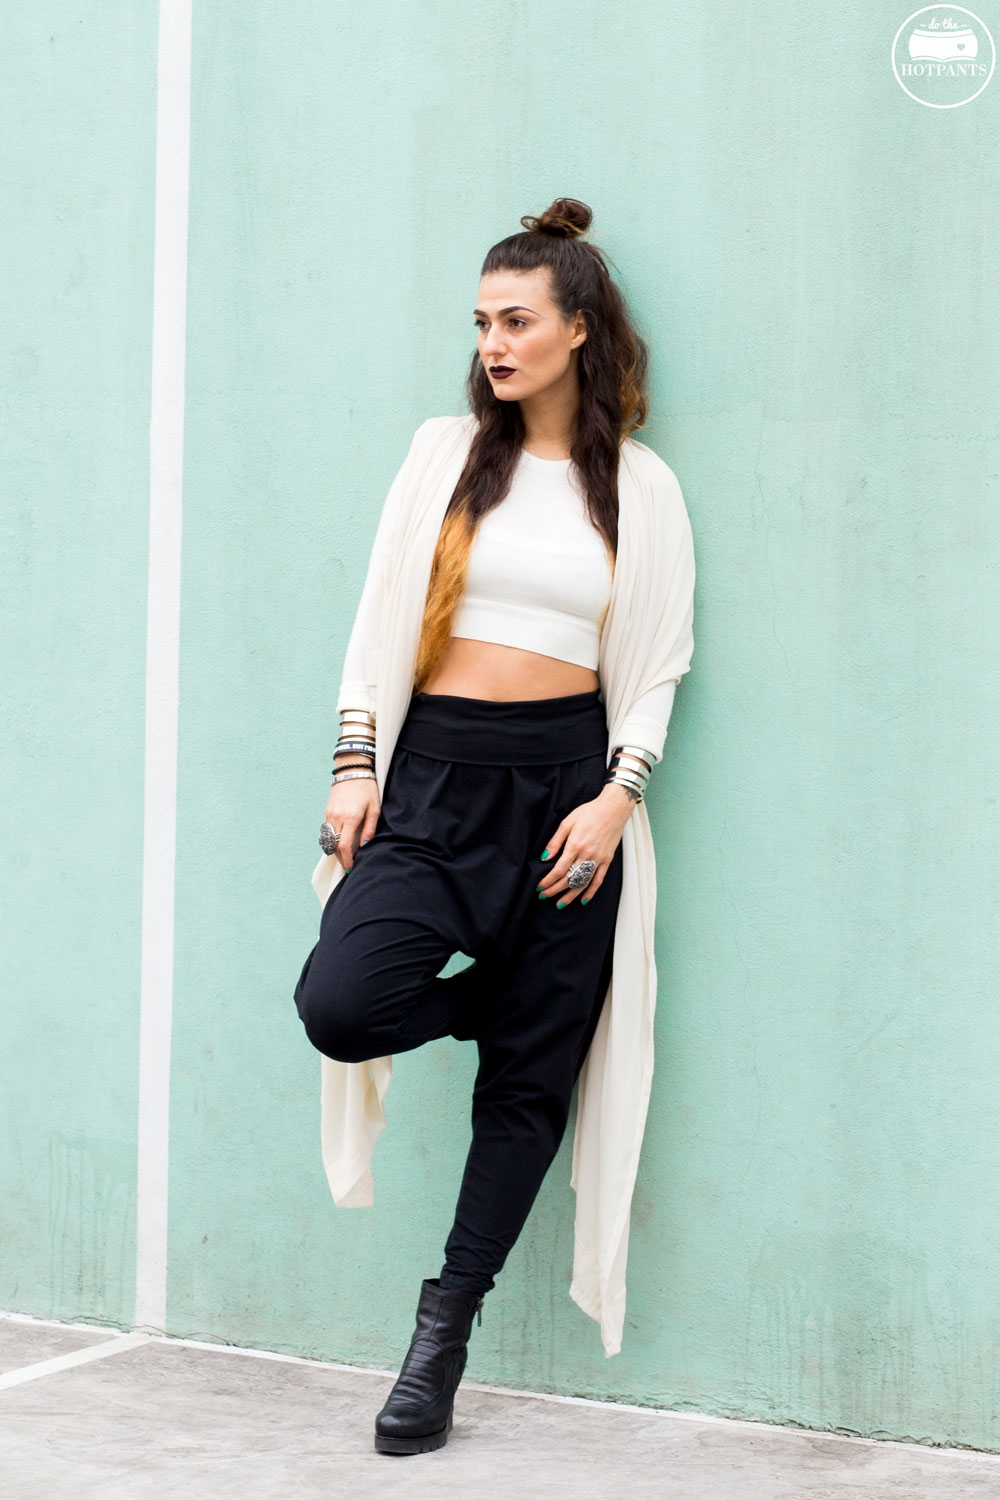 Harem Drop Crotch Pants White Black Crop Top Outfit New York Winter Fashion